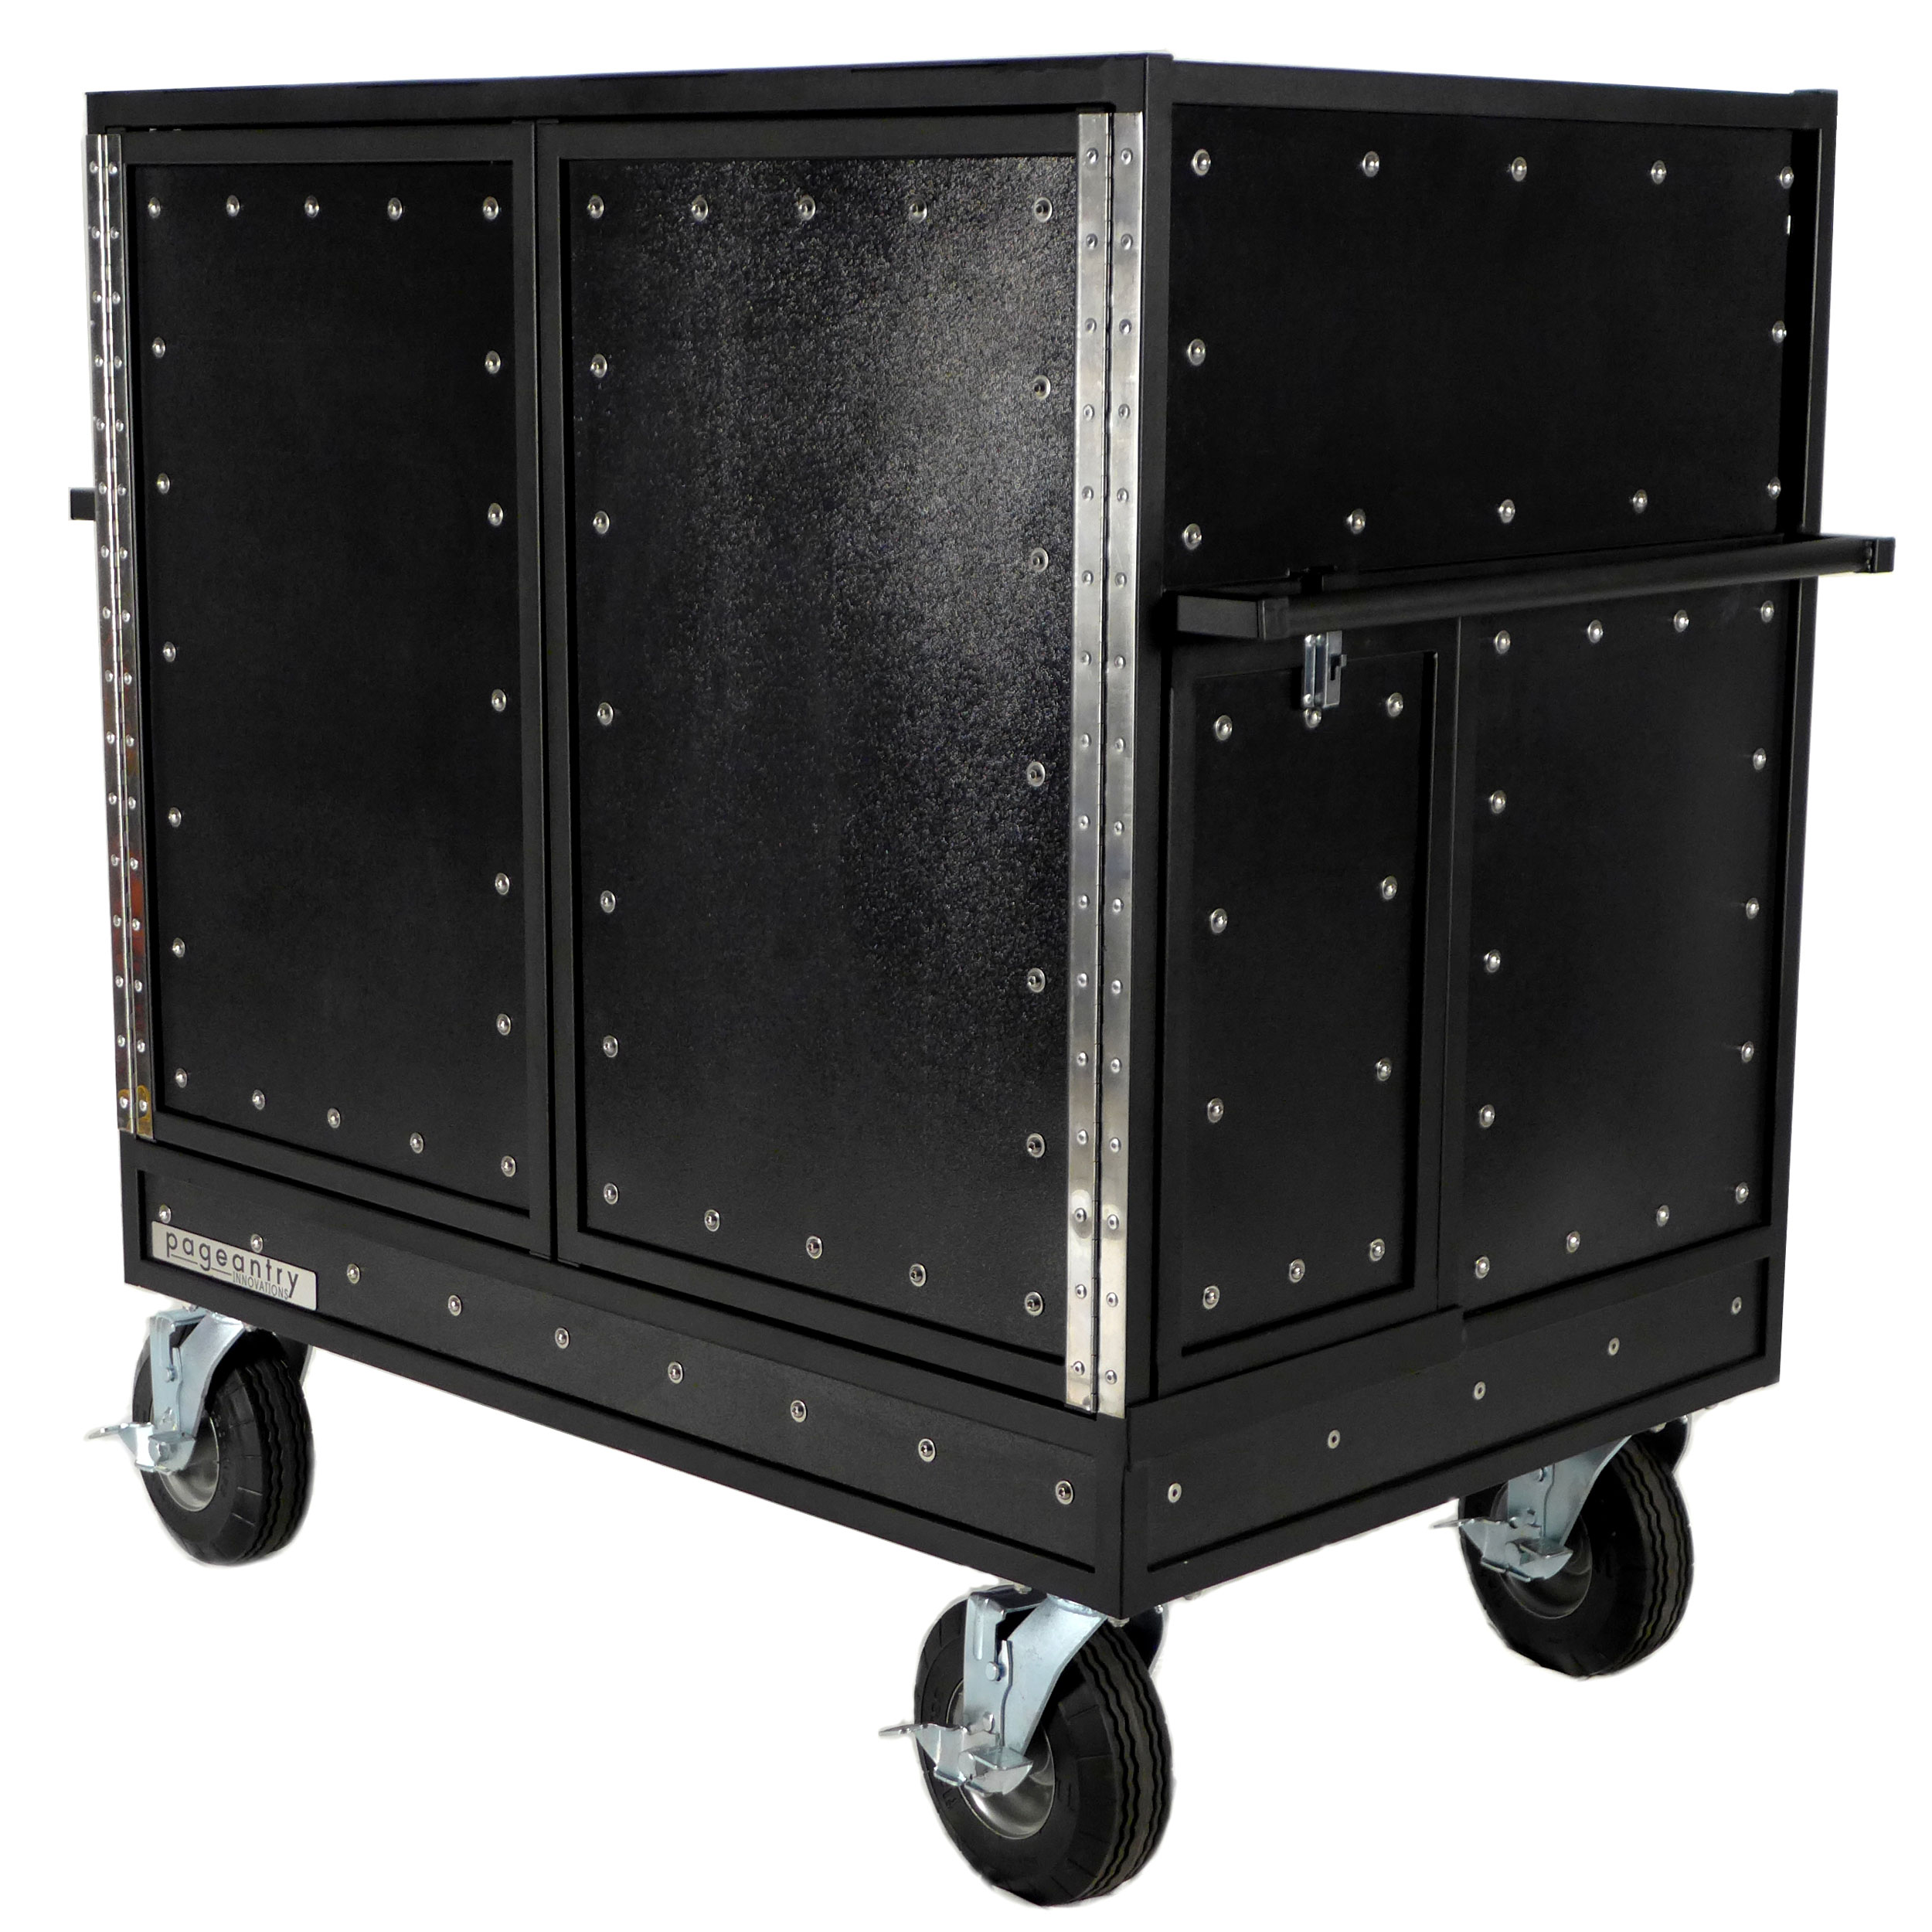 Pageantry Innovations MC-20 Standard Double Mixer Cart